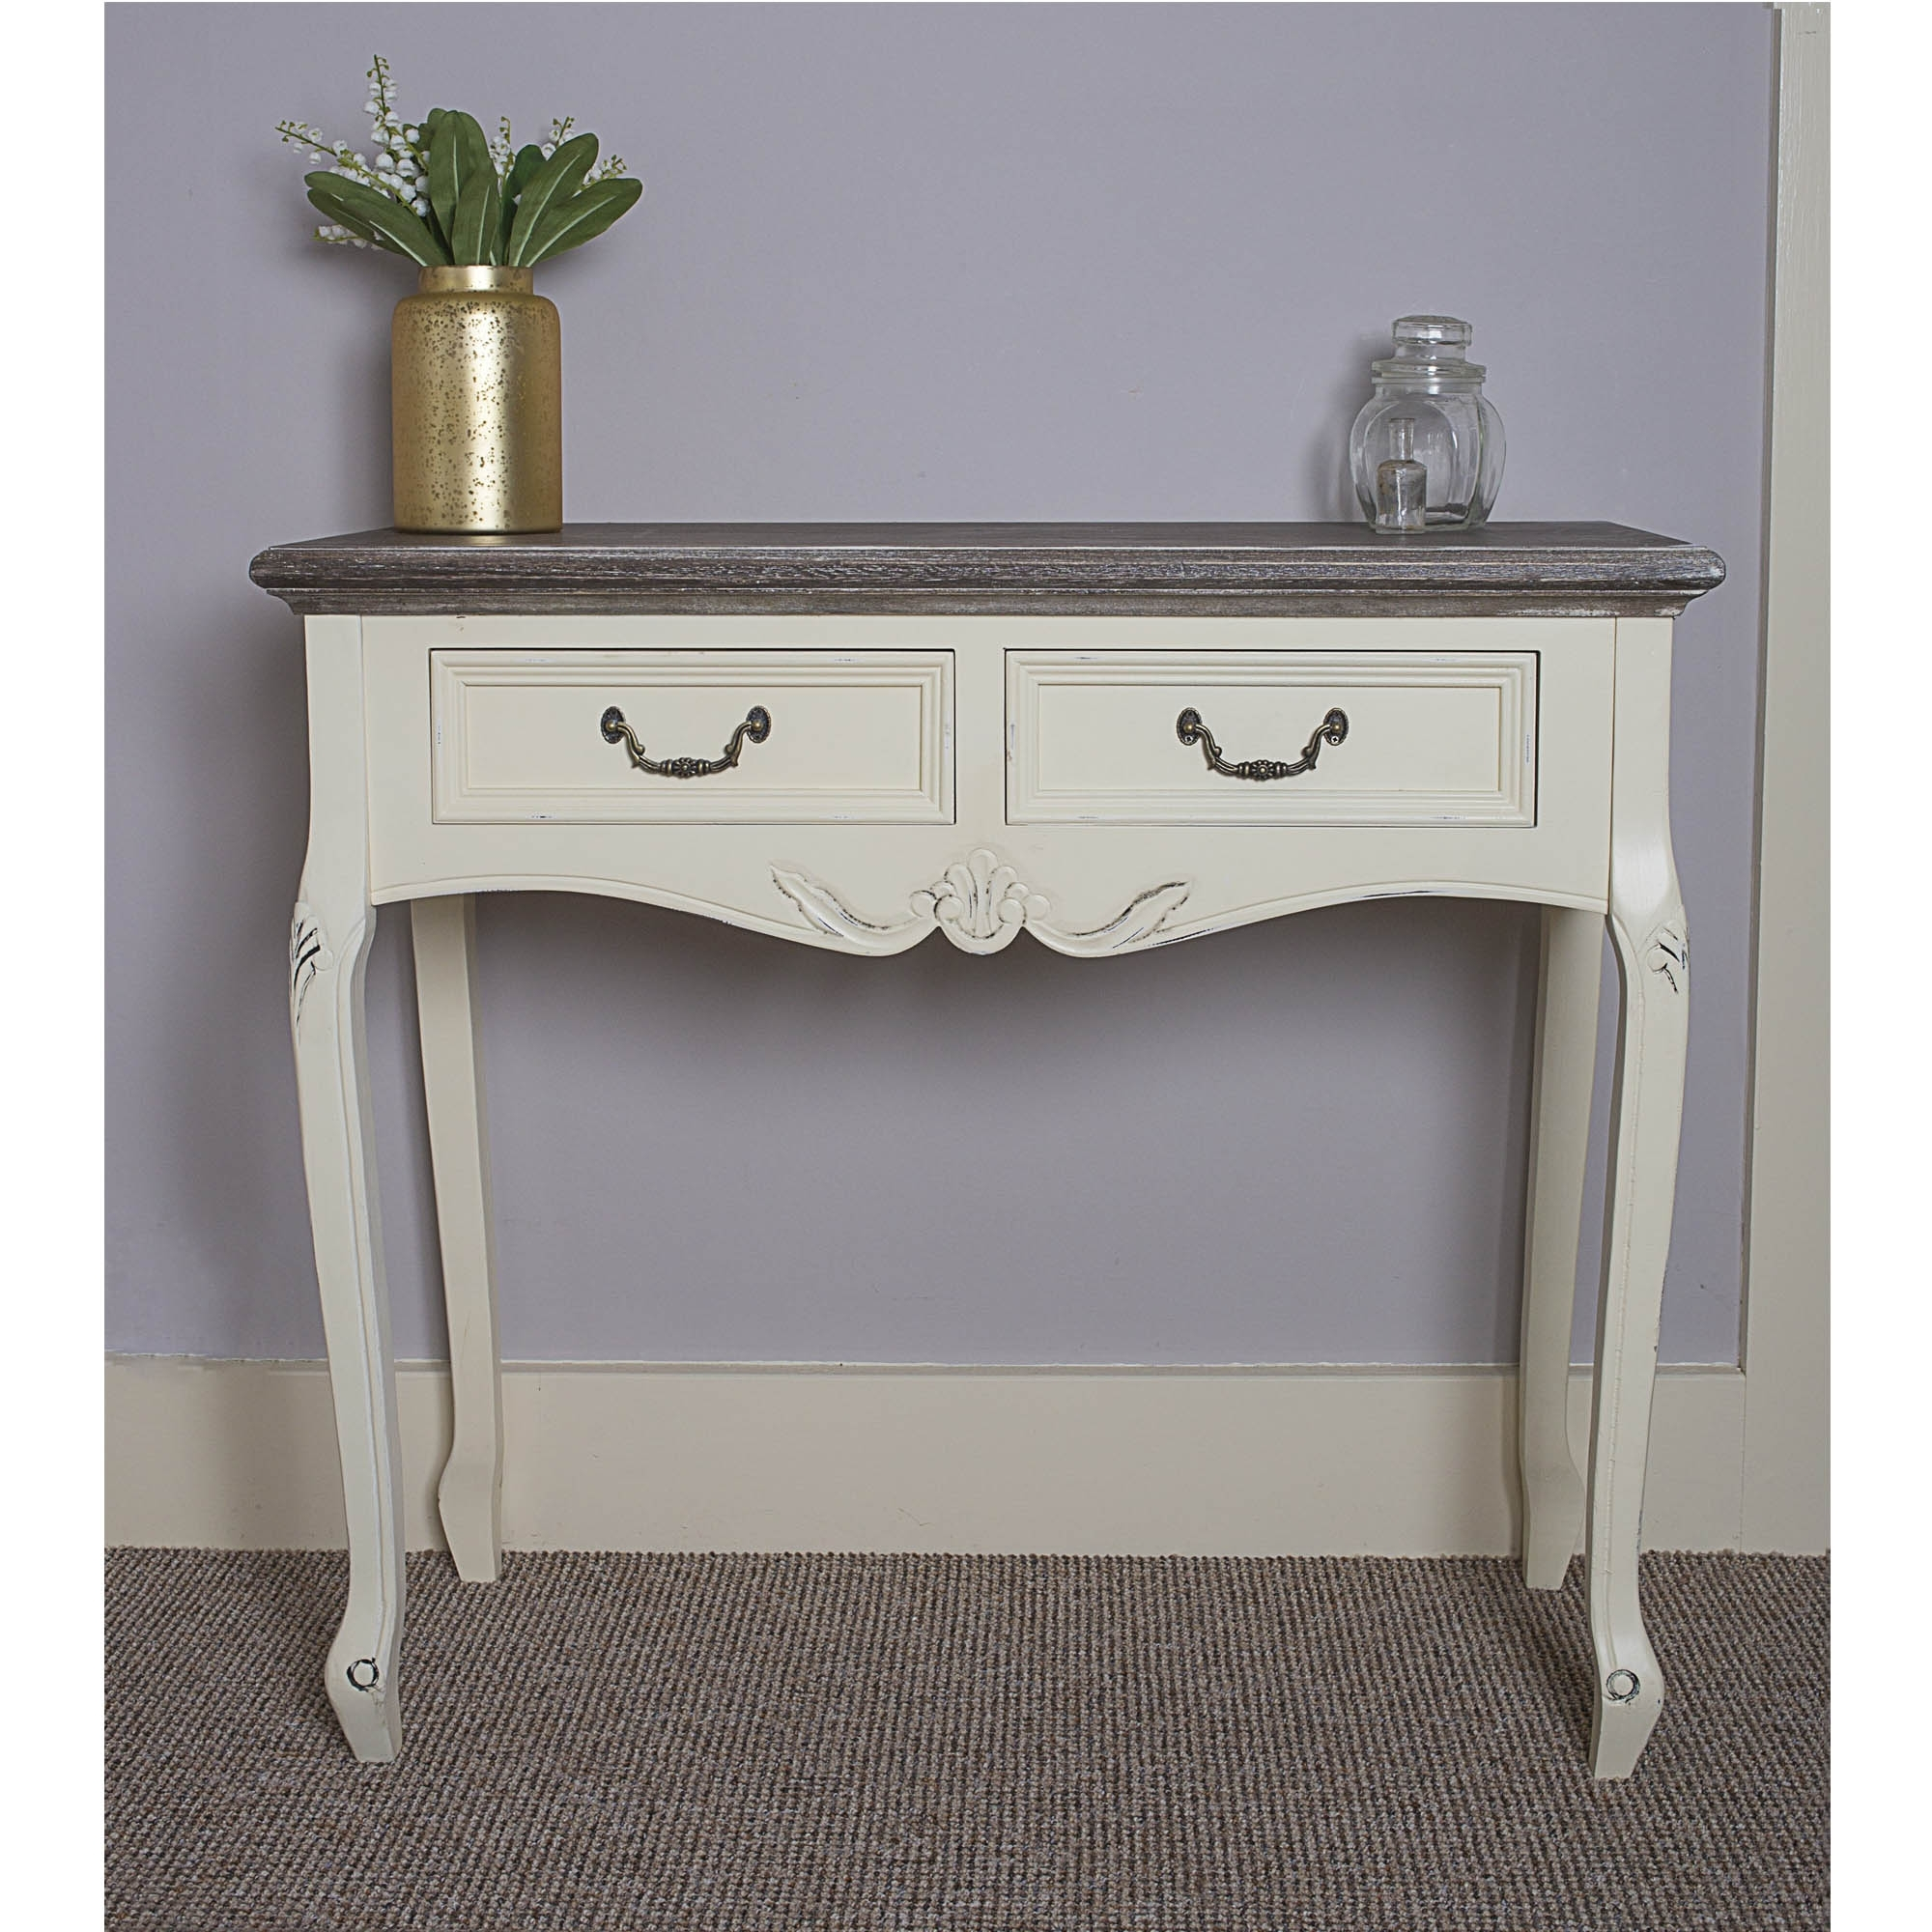 heritage shabby chic console table console table homesdirect365 rh homesdirect365 co uk shabby chic console table painters shabby chic console table gumtree torfaen